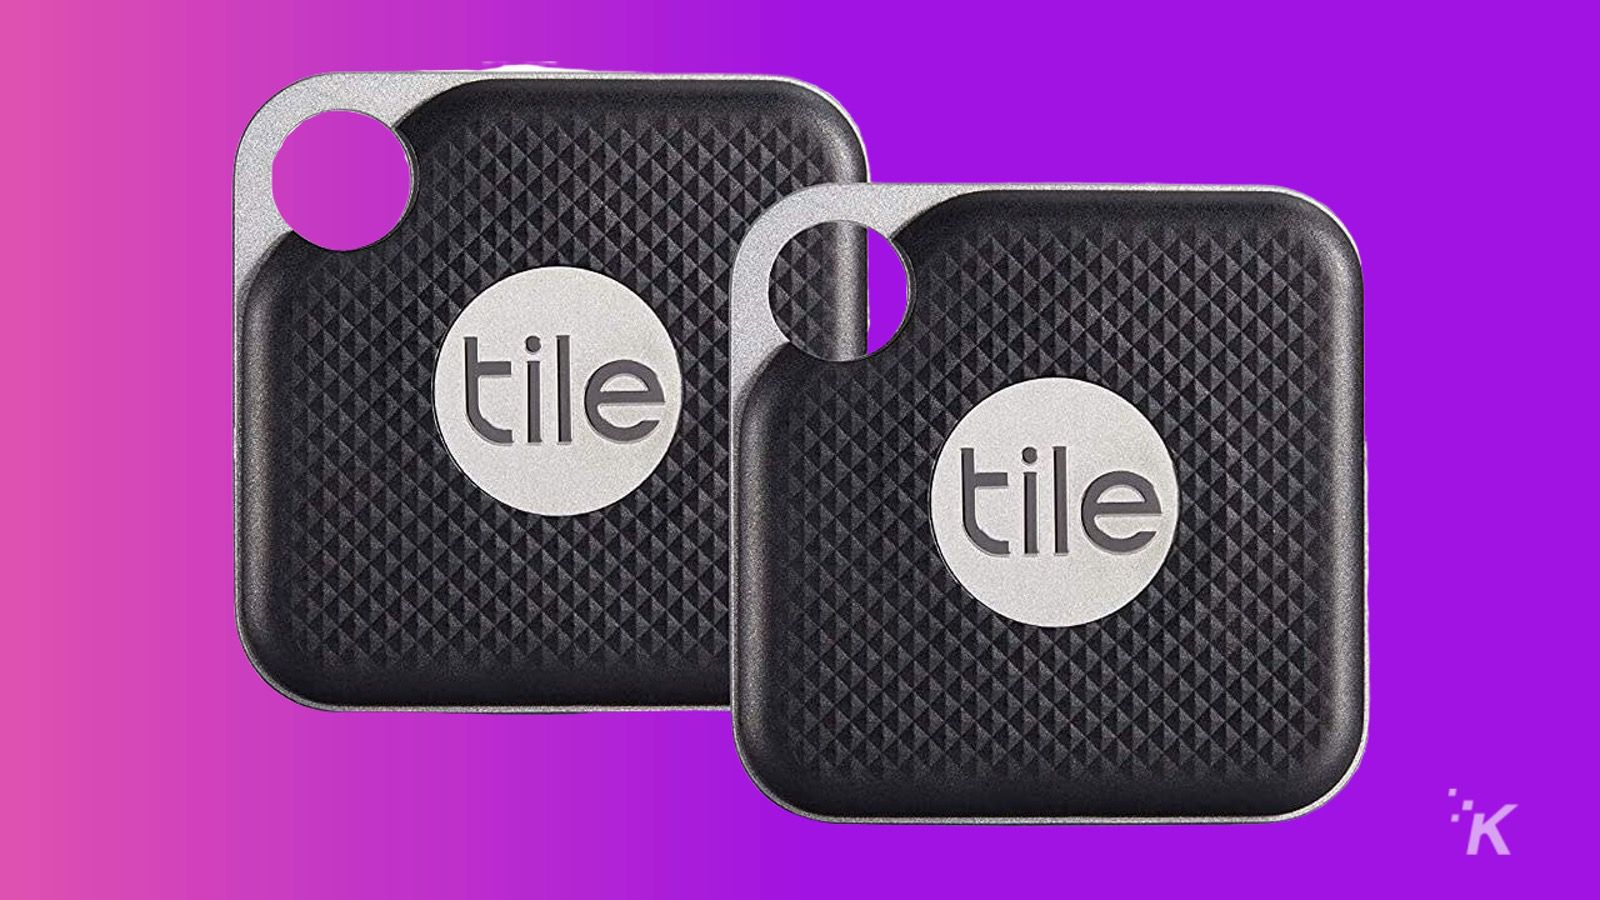 tile pro trackers